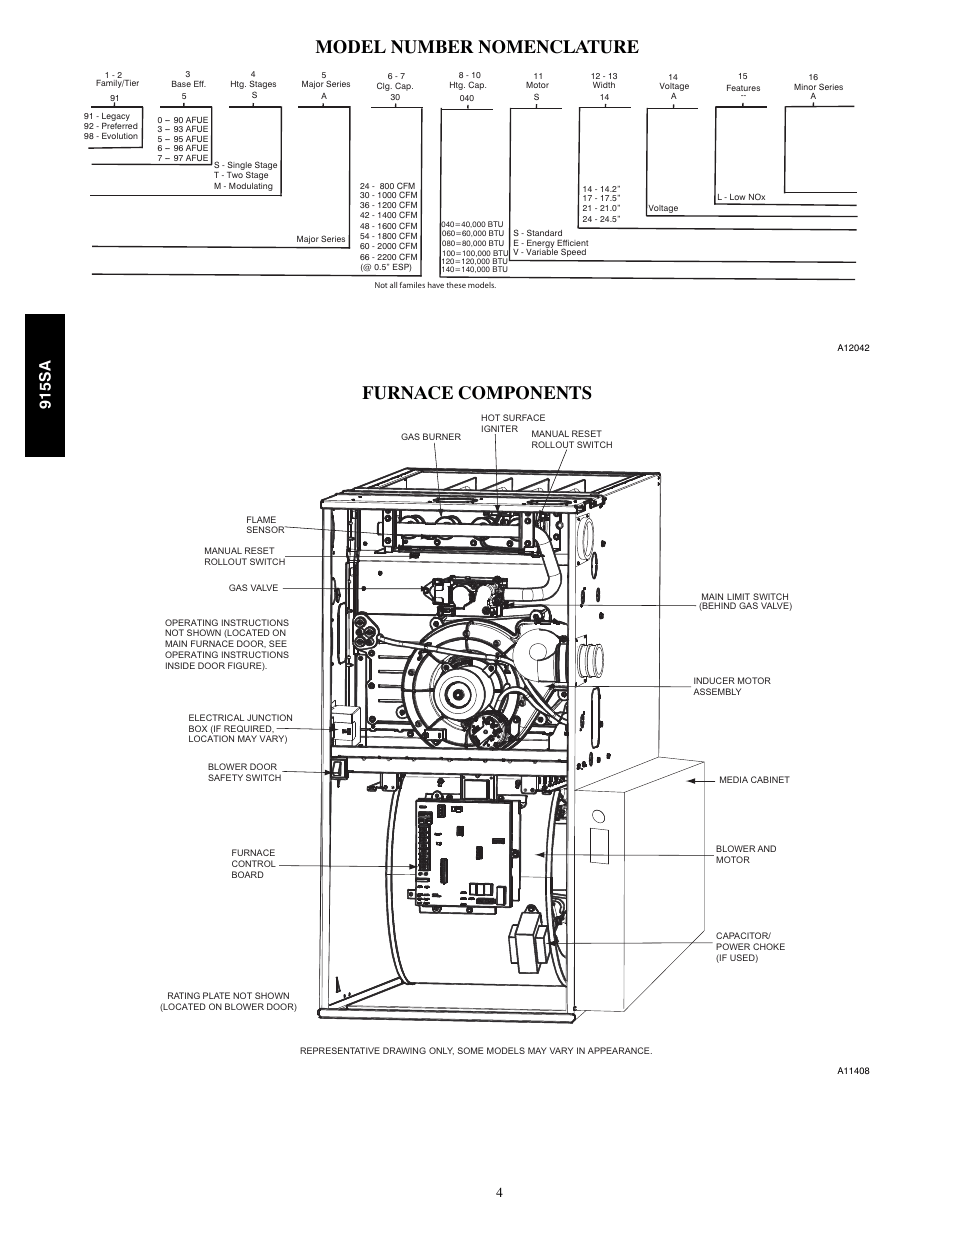 Model number nomenclature, Furnace components, 915sa